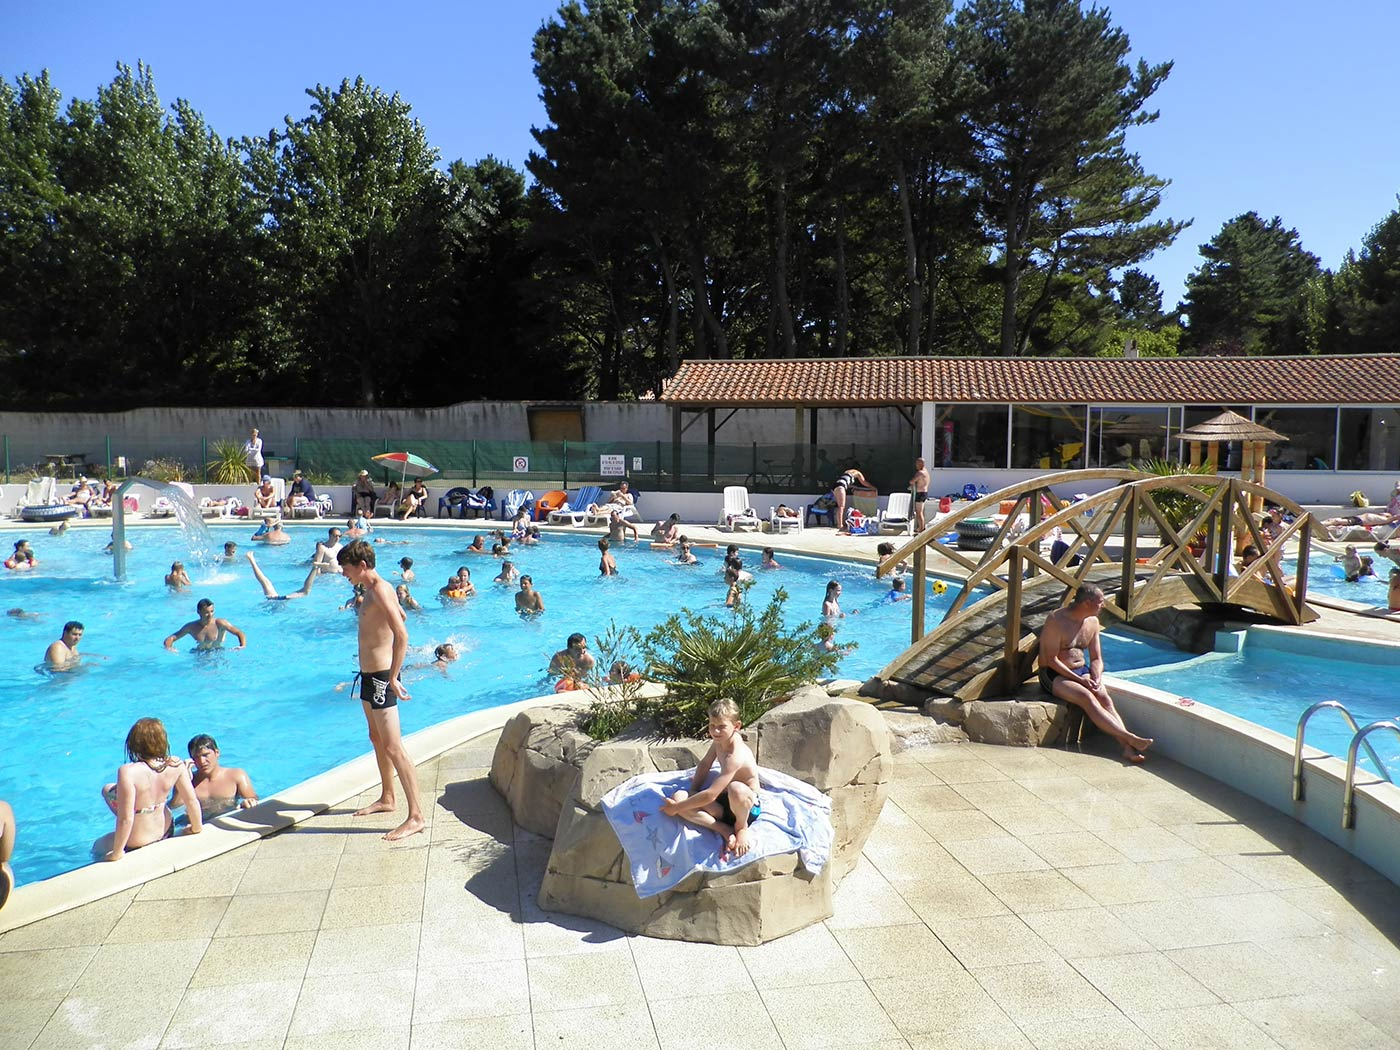 Camping piscine couverte herault camping dordogne for Camping beziers avec piscine